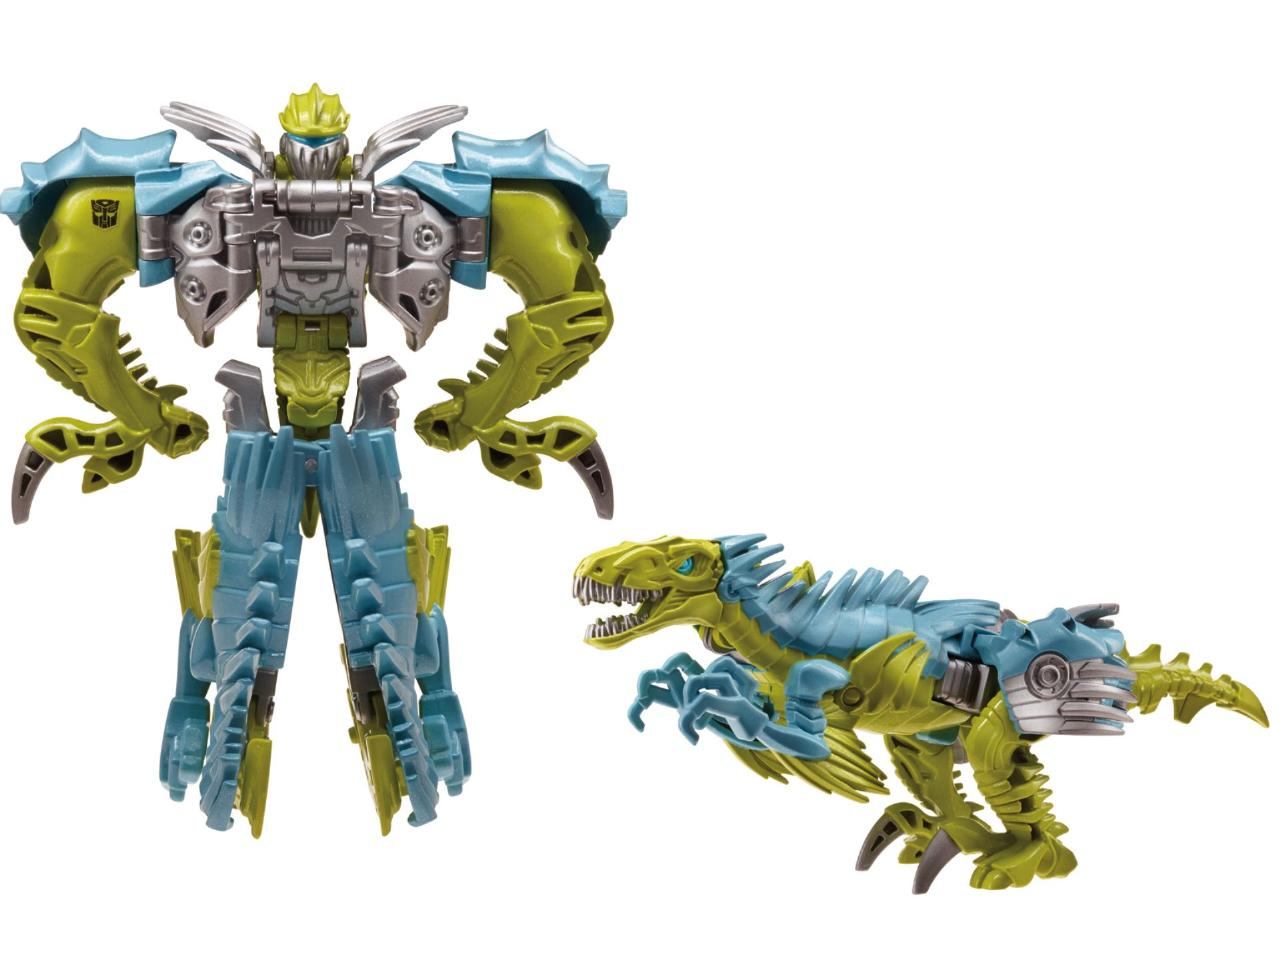 Closer look at grimlock dinobots and others from